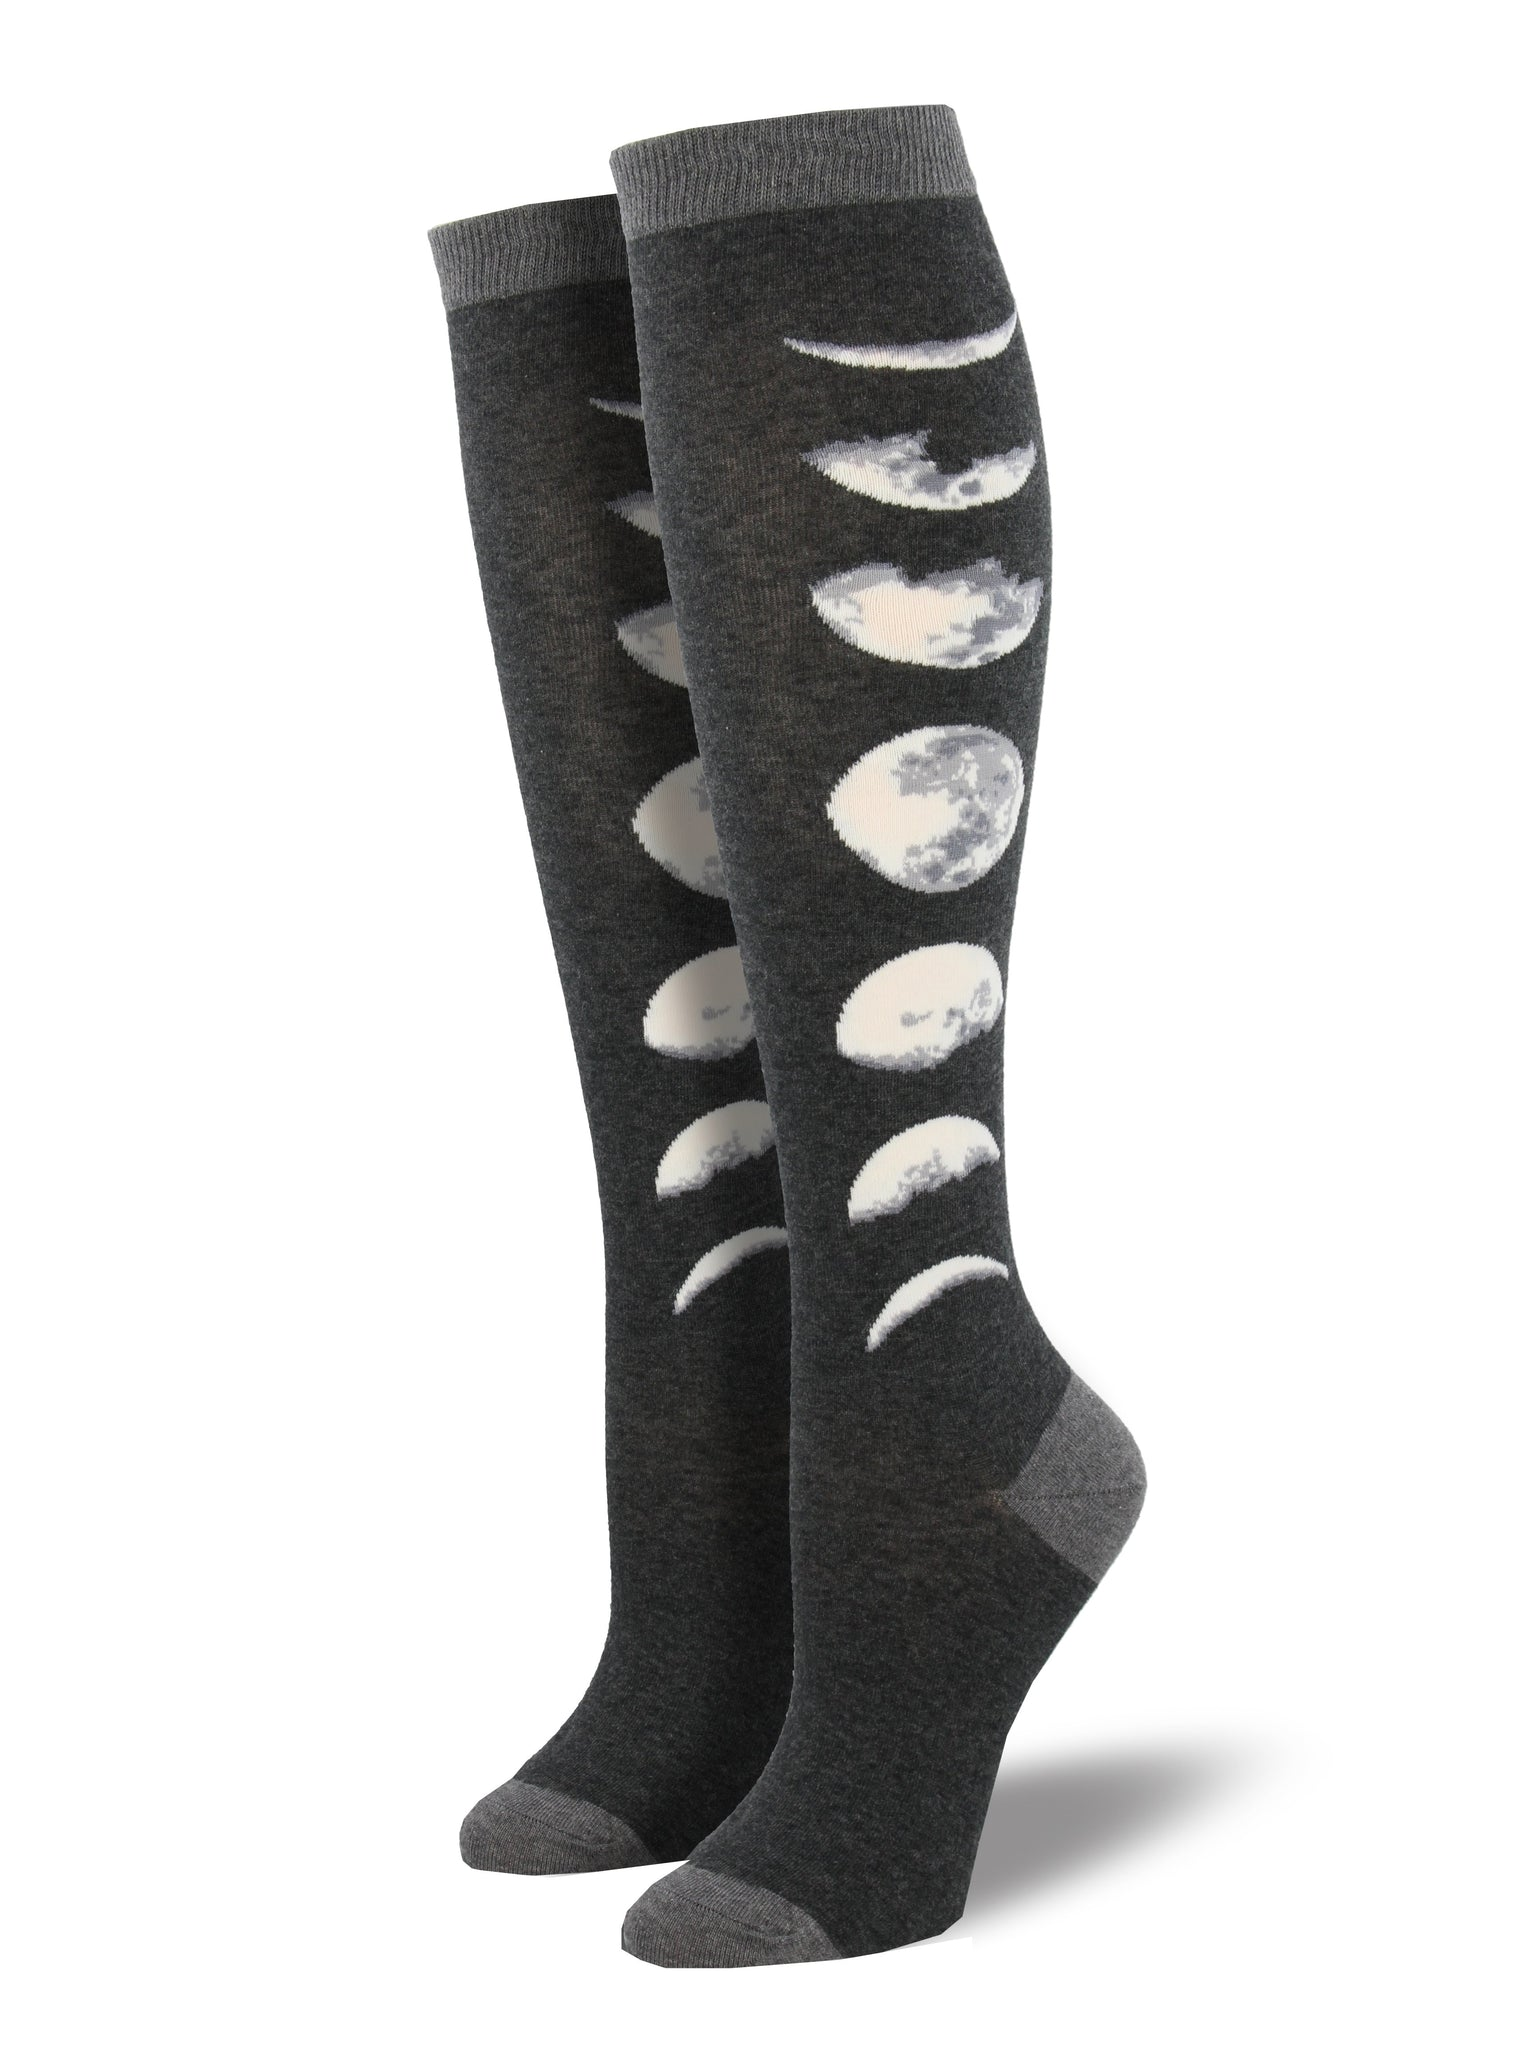 7b4615e7d Women s Phases Of The Moon Knee High Socks - Charcoal